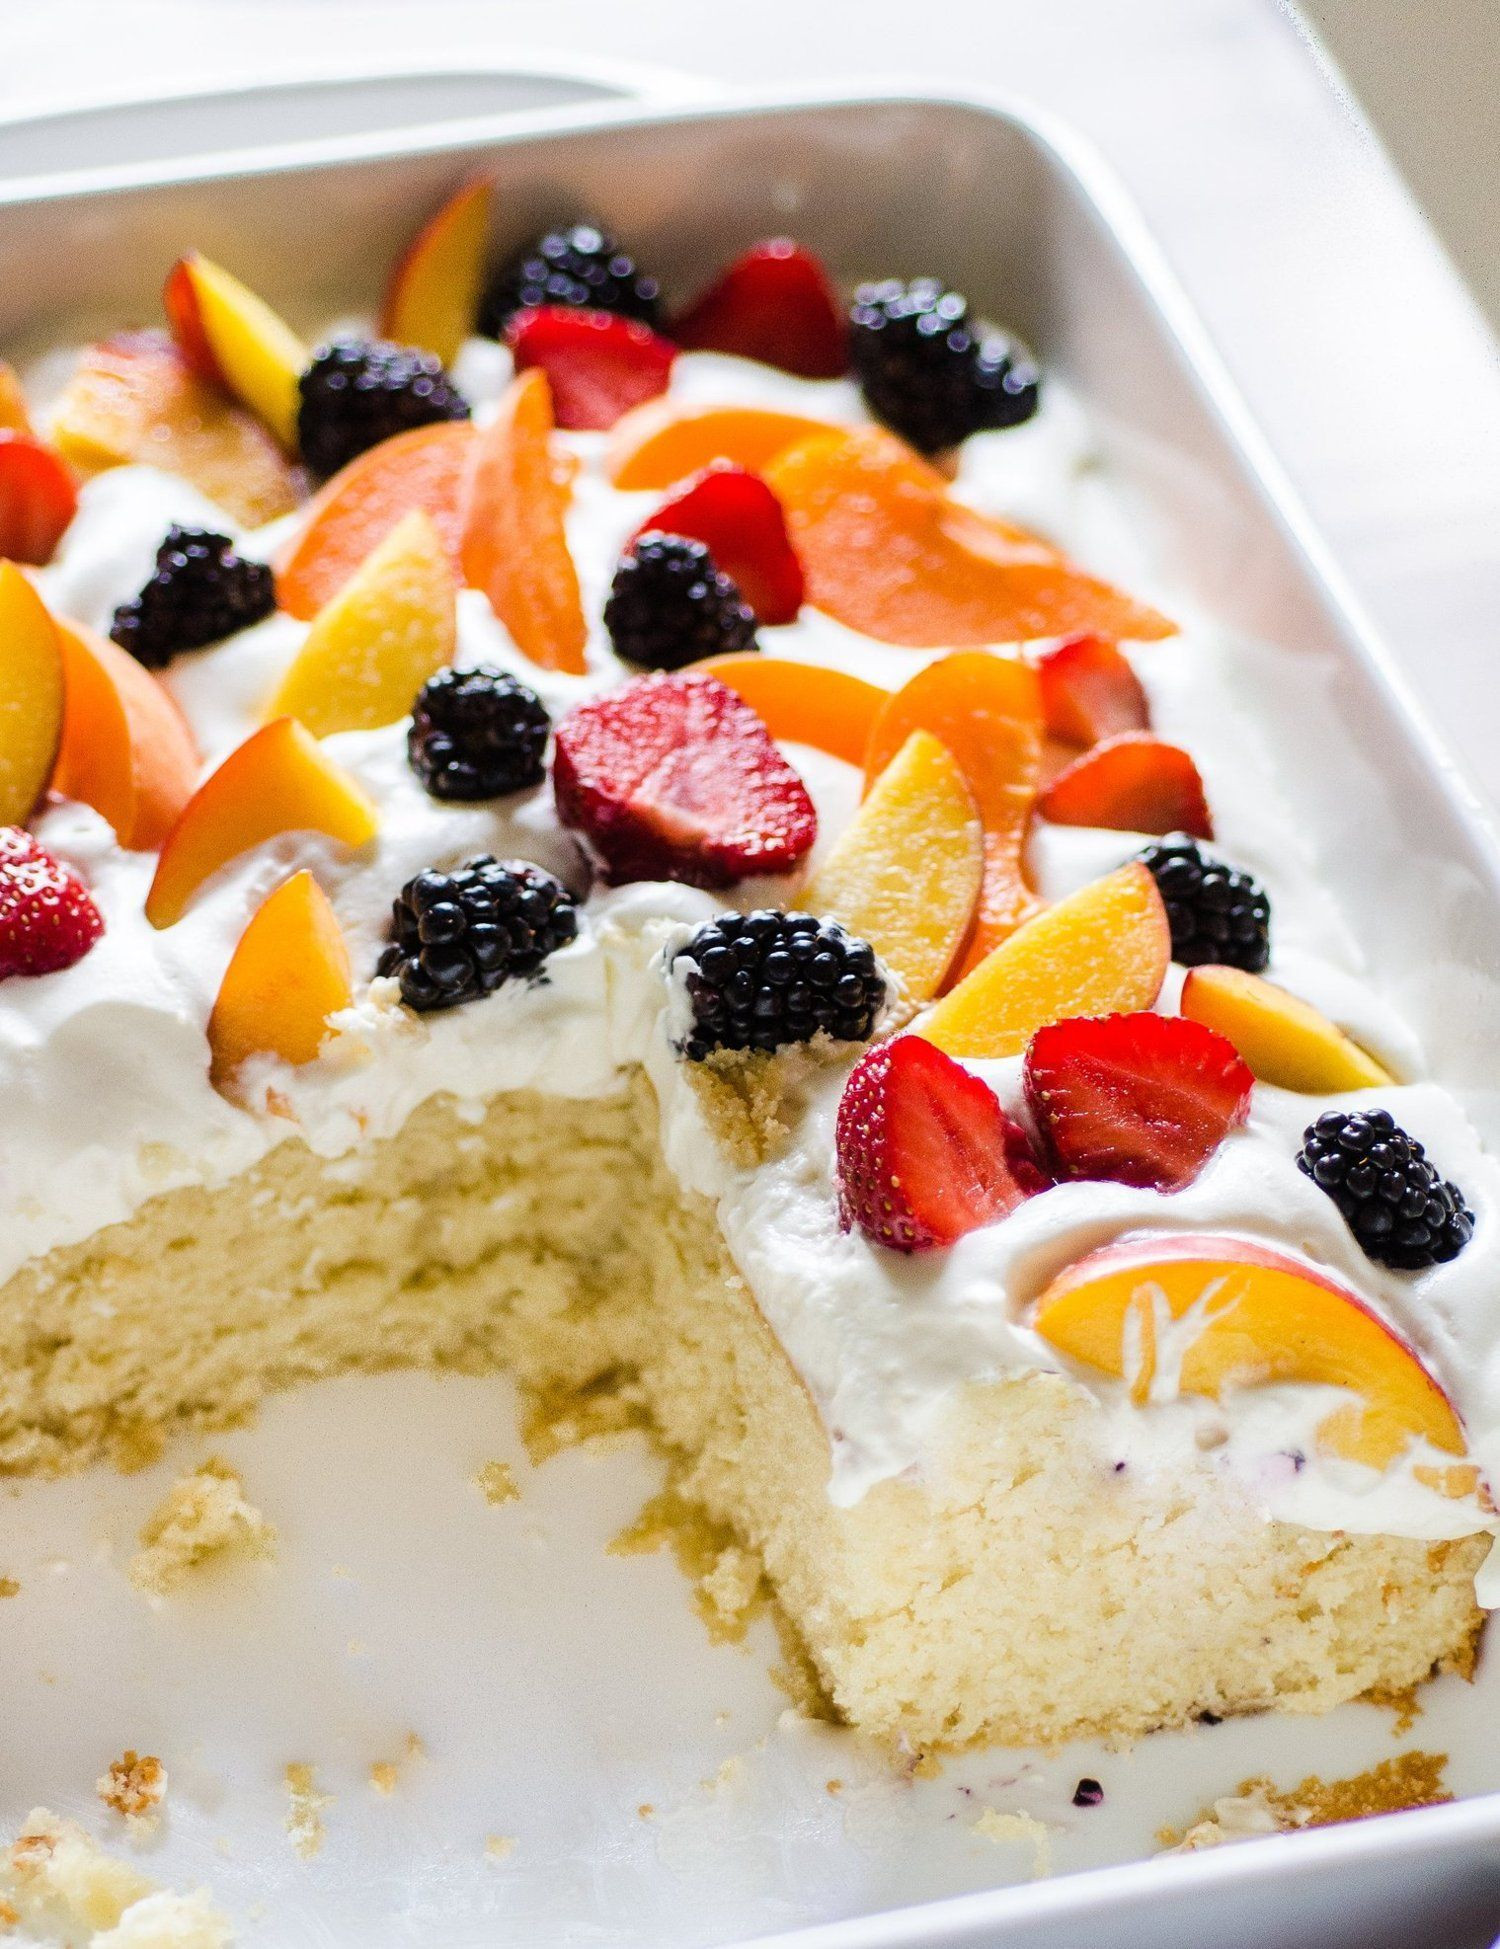 Summer Dessert Ideas  Easy Summer Cake with Fruit & Cream Recipe